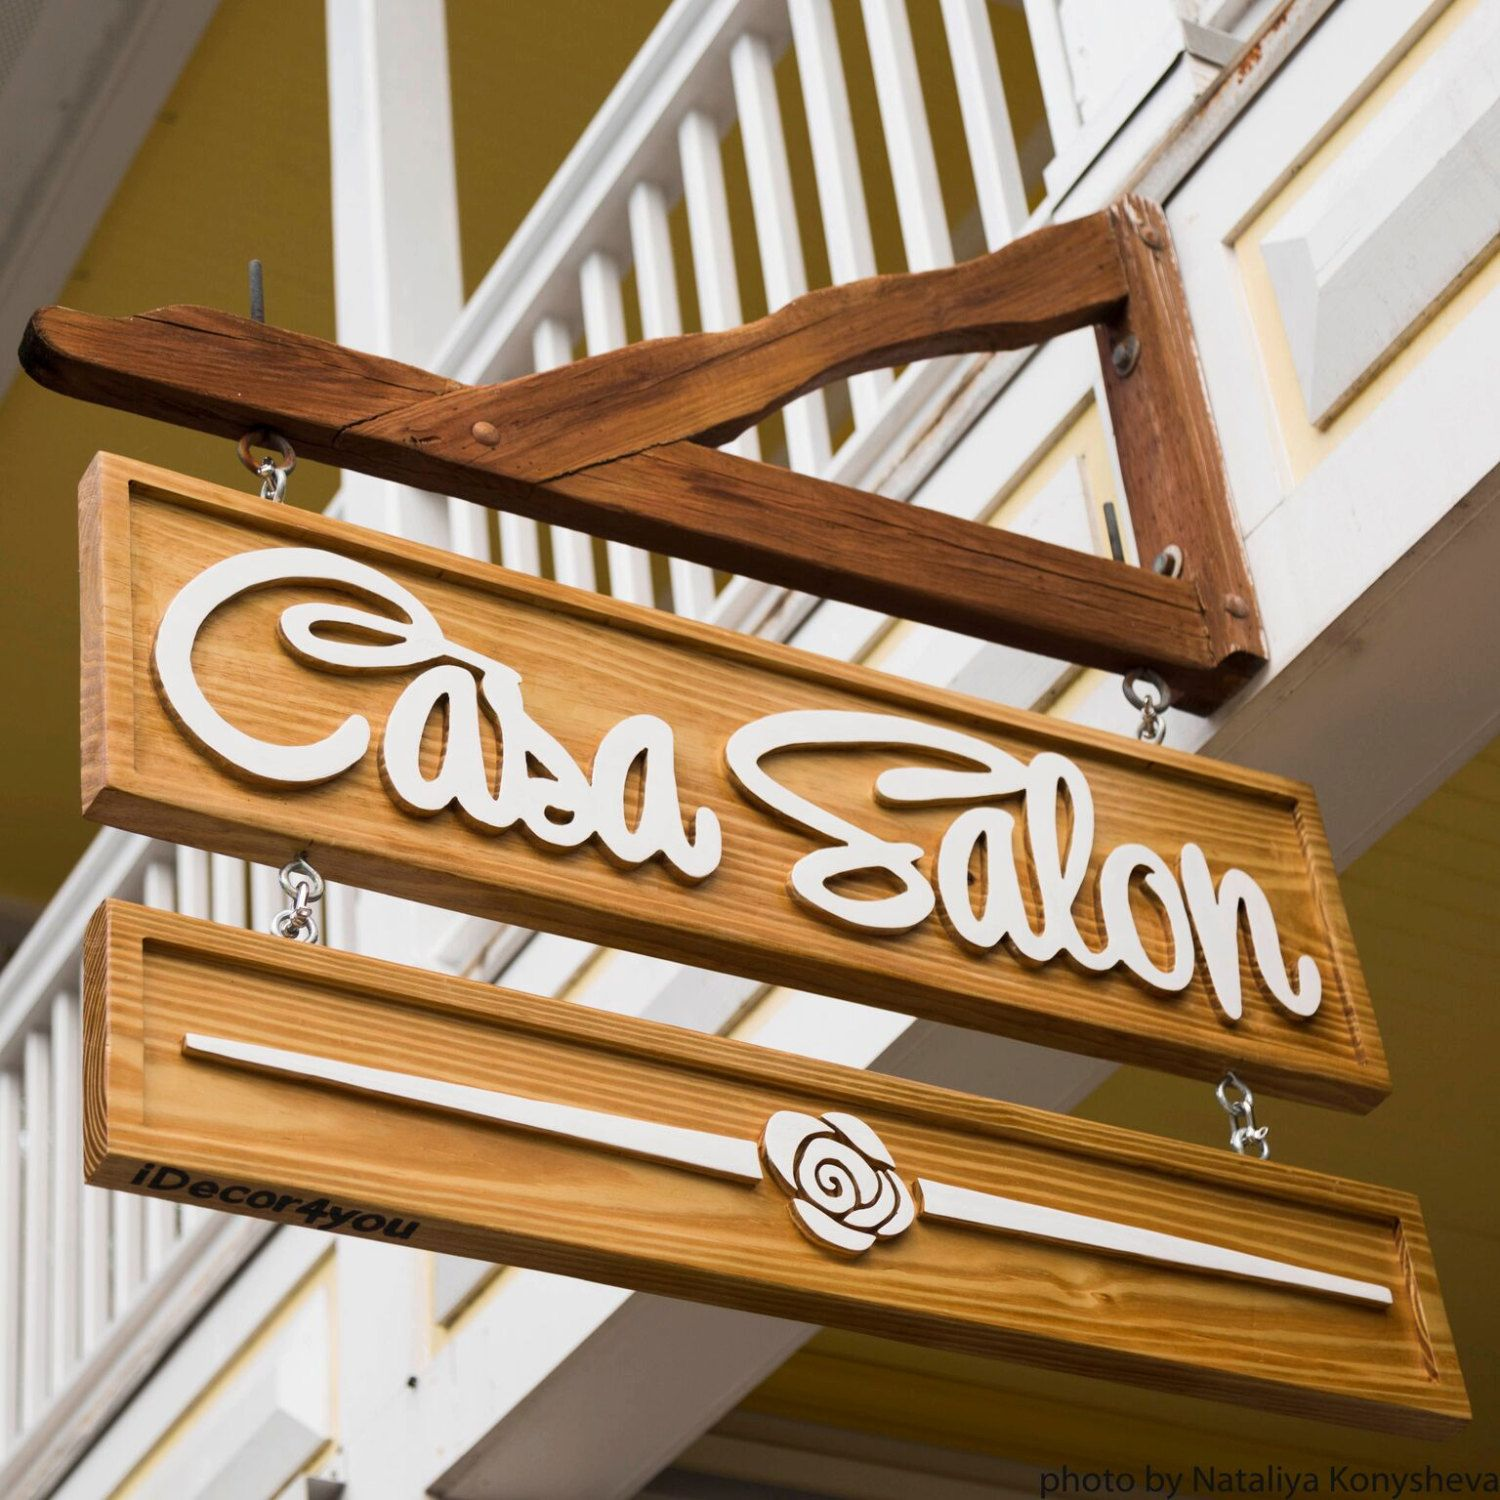 Carved Wood Business Sign Advertising Outdoor Signage Company Name